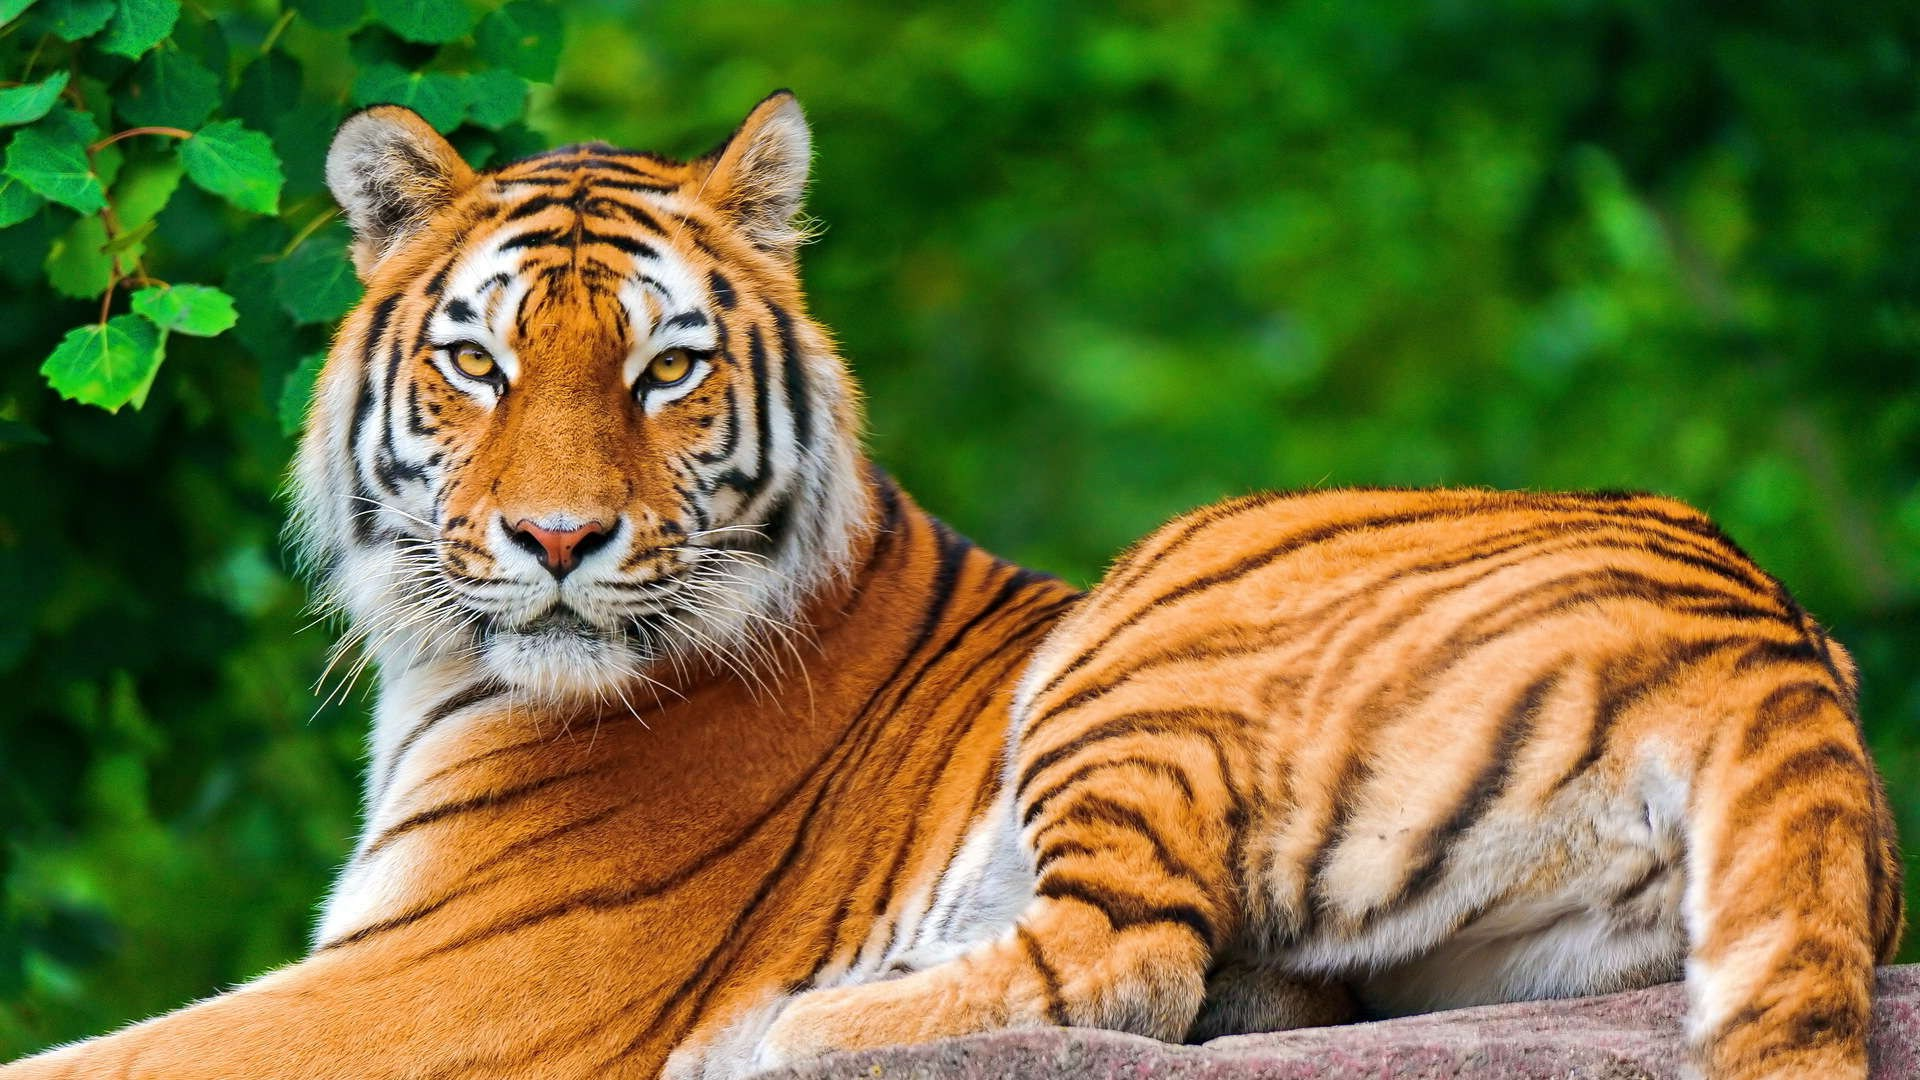 nature, animals, tiger, big cats wallpapers hd / desktop and mobile